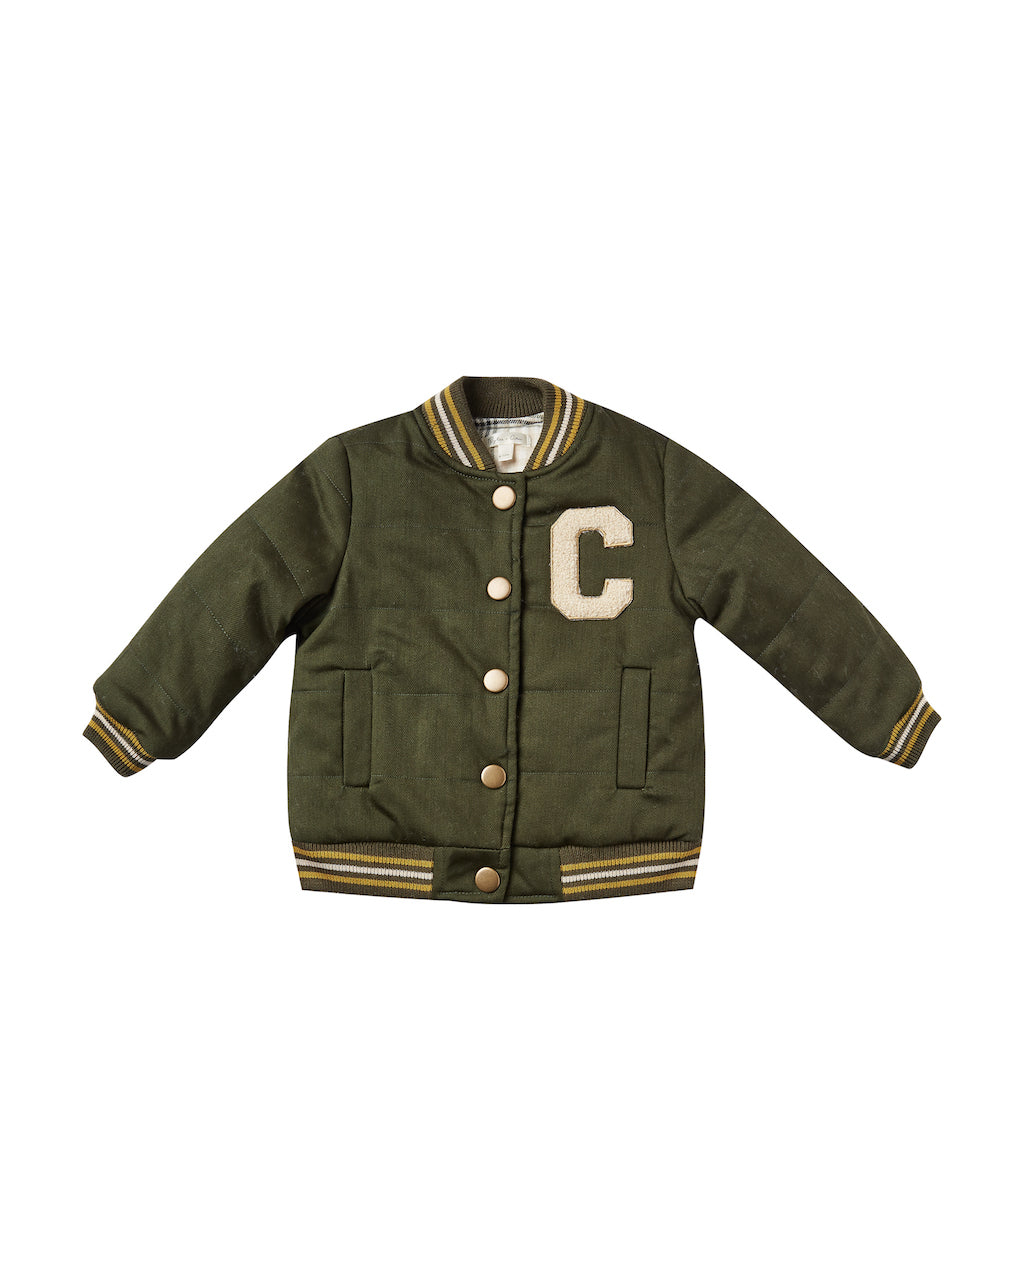 Rylee & Cru Layton Jacket in Forest